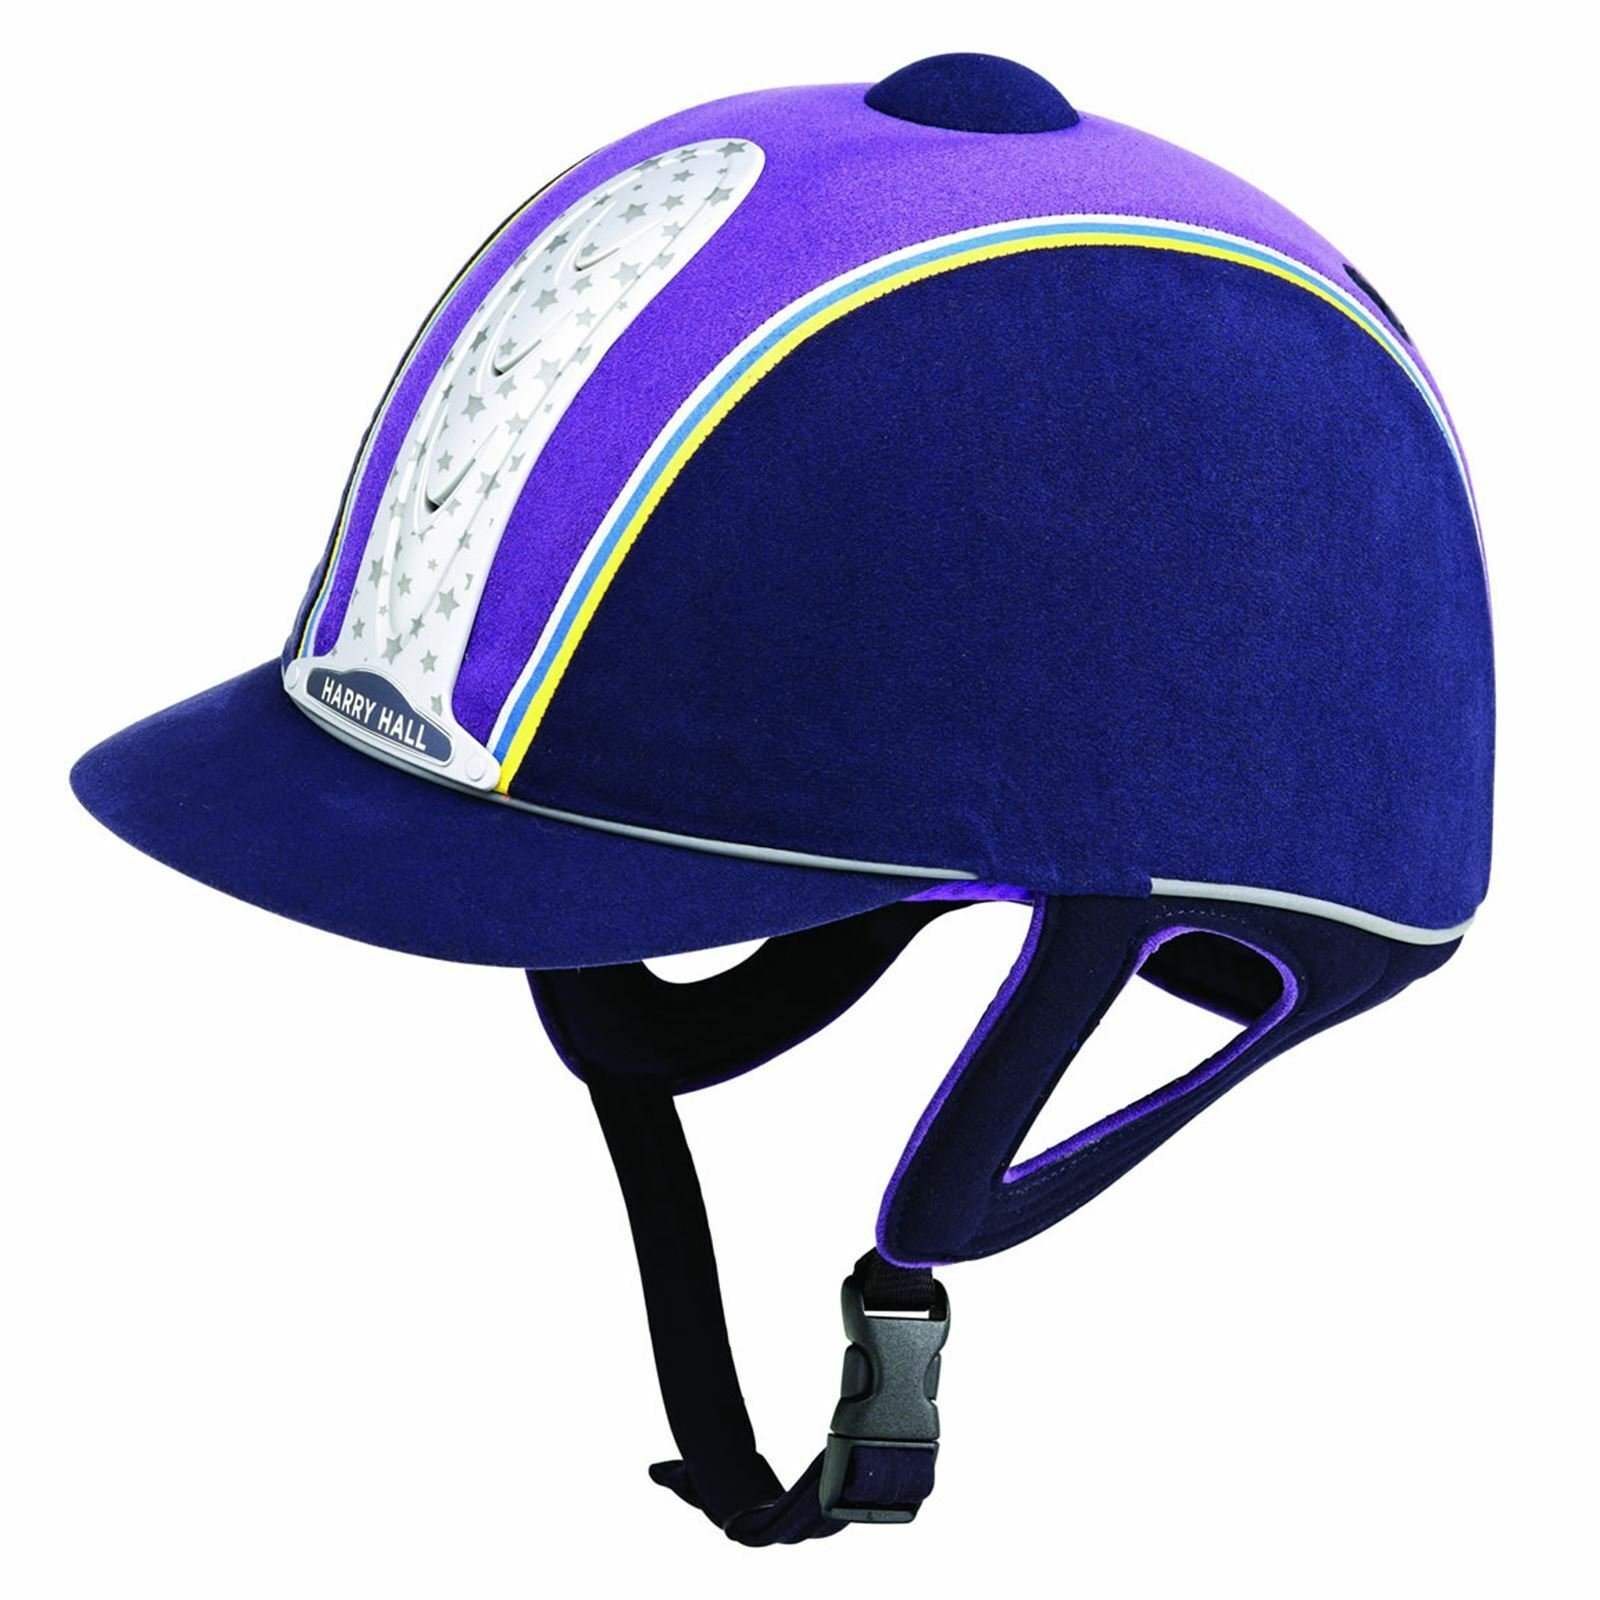 Harry  Hall Equine Legend Plus Junior Bsi Kitemark Lightweight Safety Riding Hat  enjoying your shopping